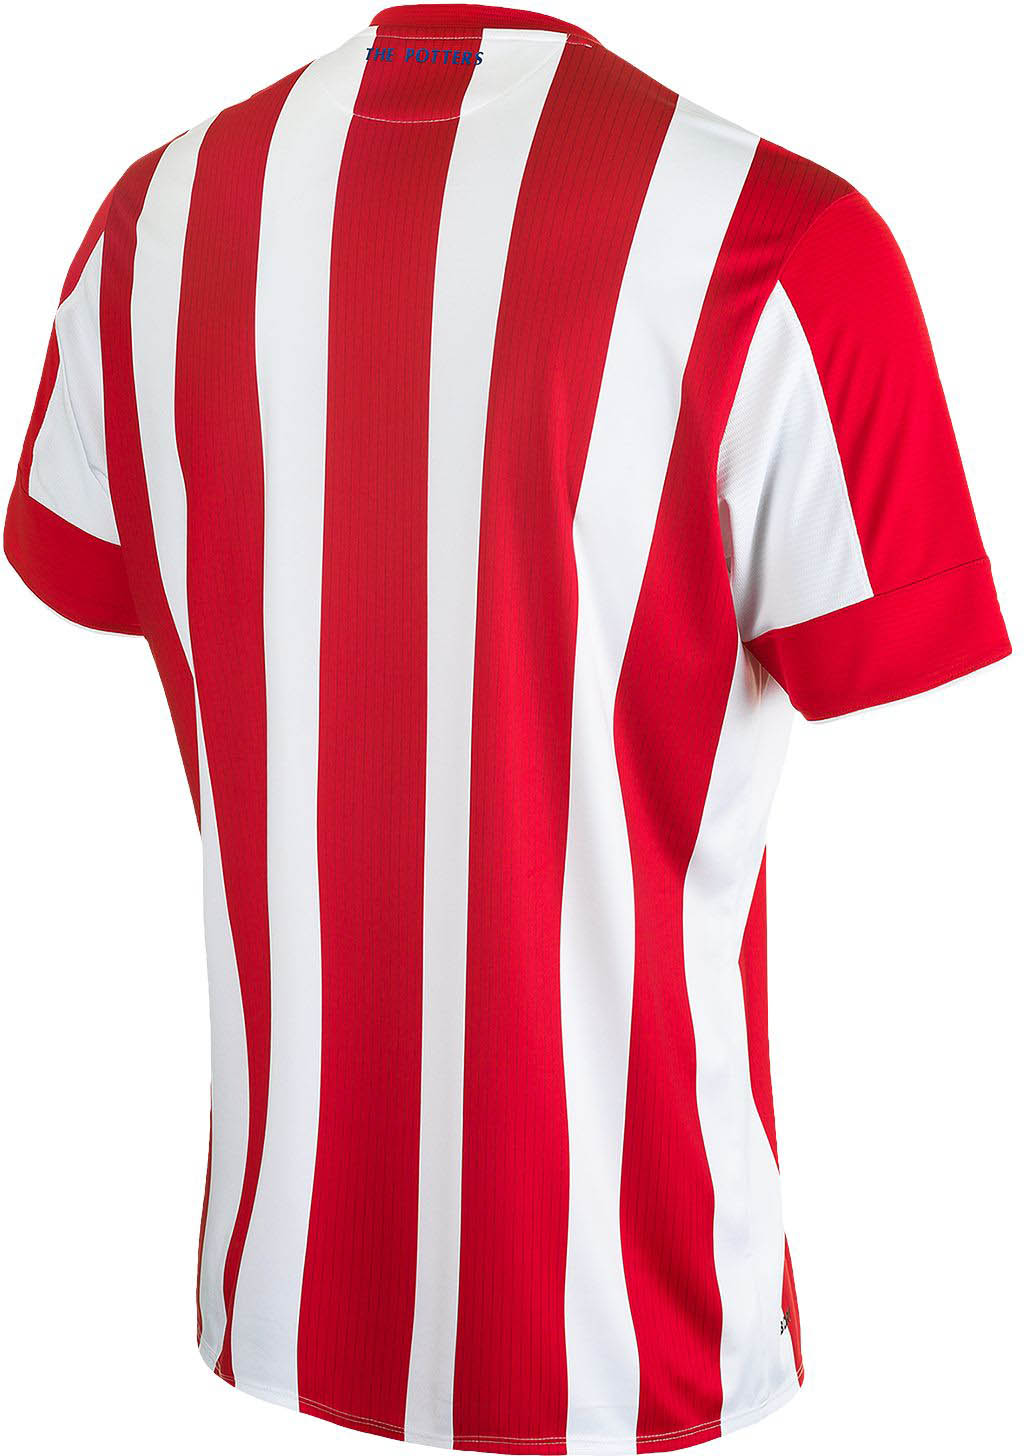 56982f73295 Stoke City 2015-16 Home Away and Goal Kick Kits Jersey   Have a ...